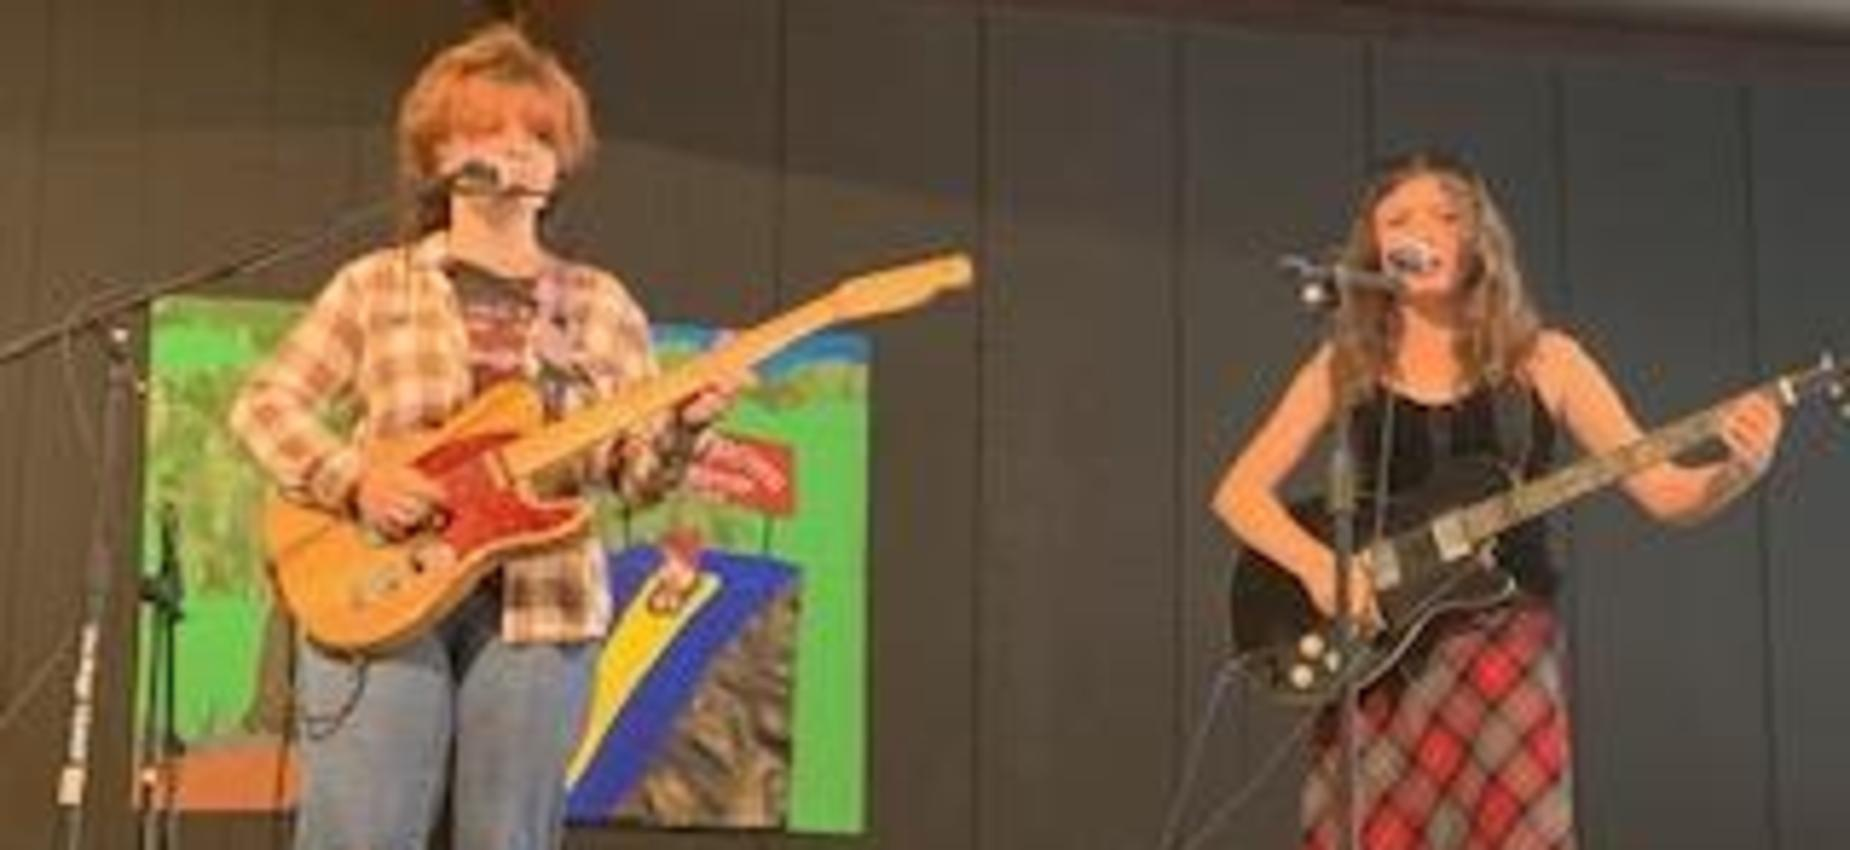 Two girls play guitar and sing on a stage.